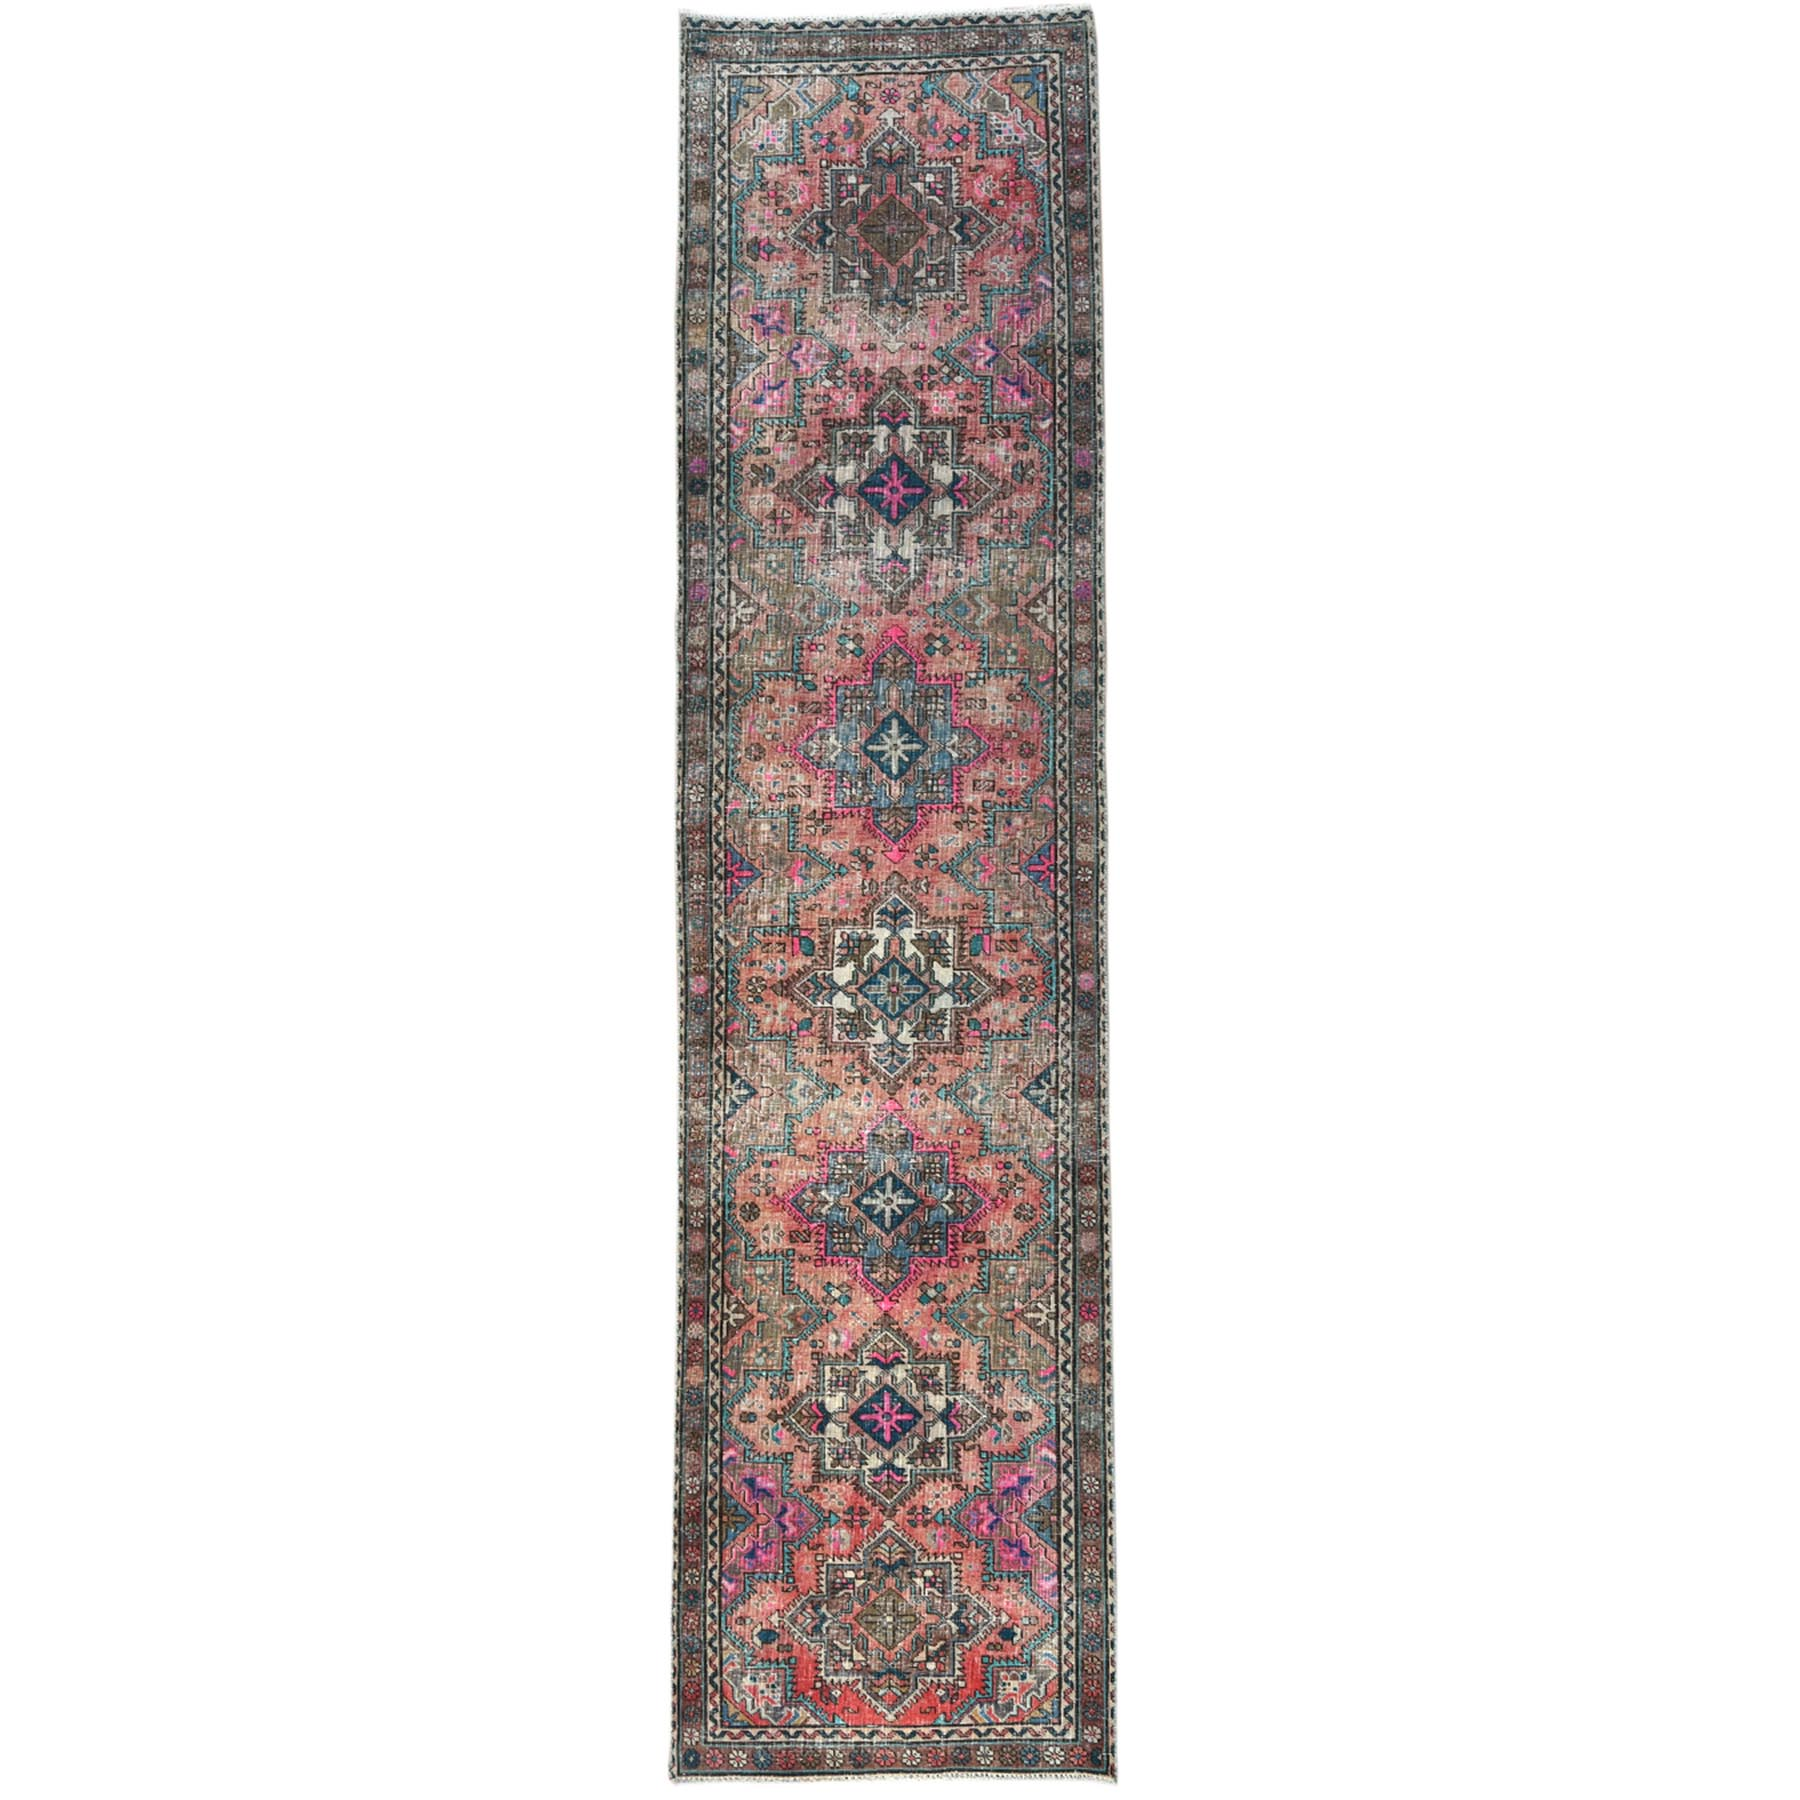 "3'1""x12'10"" Deep Red Persian Tabriz Vintage And Worn Down Clean Hand Knotted Organic Wool Oriental Runner Rug"